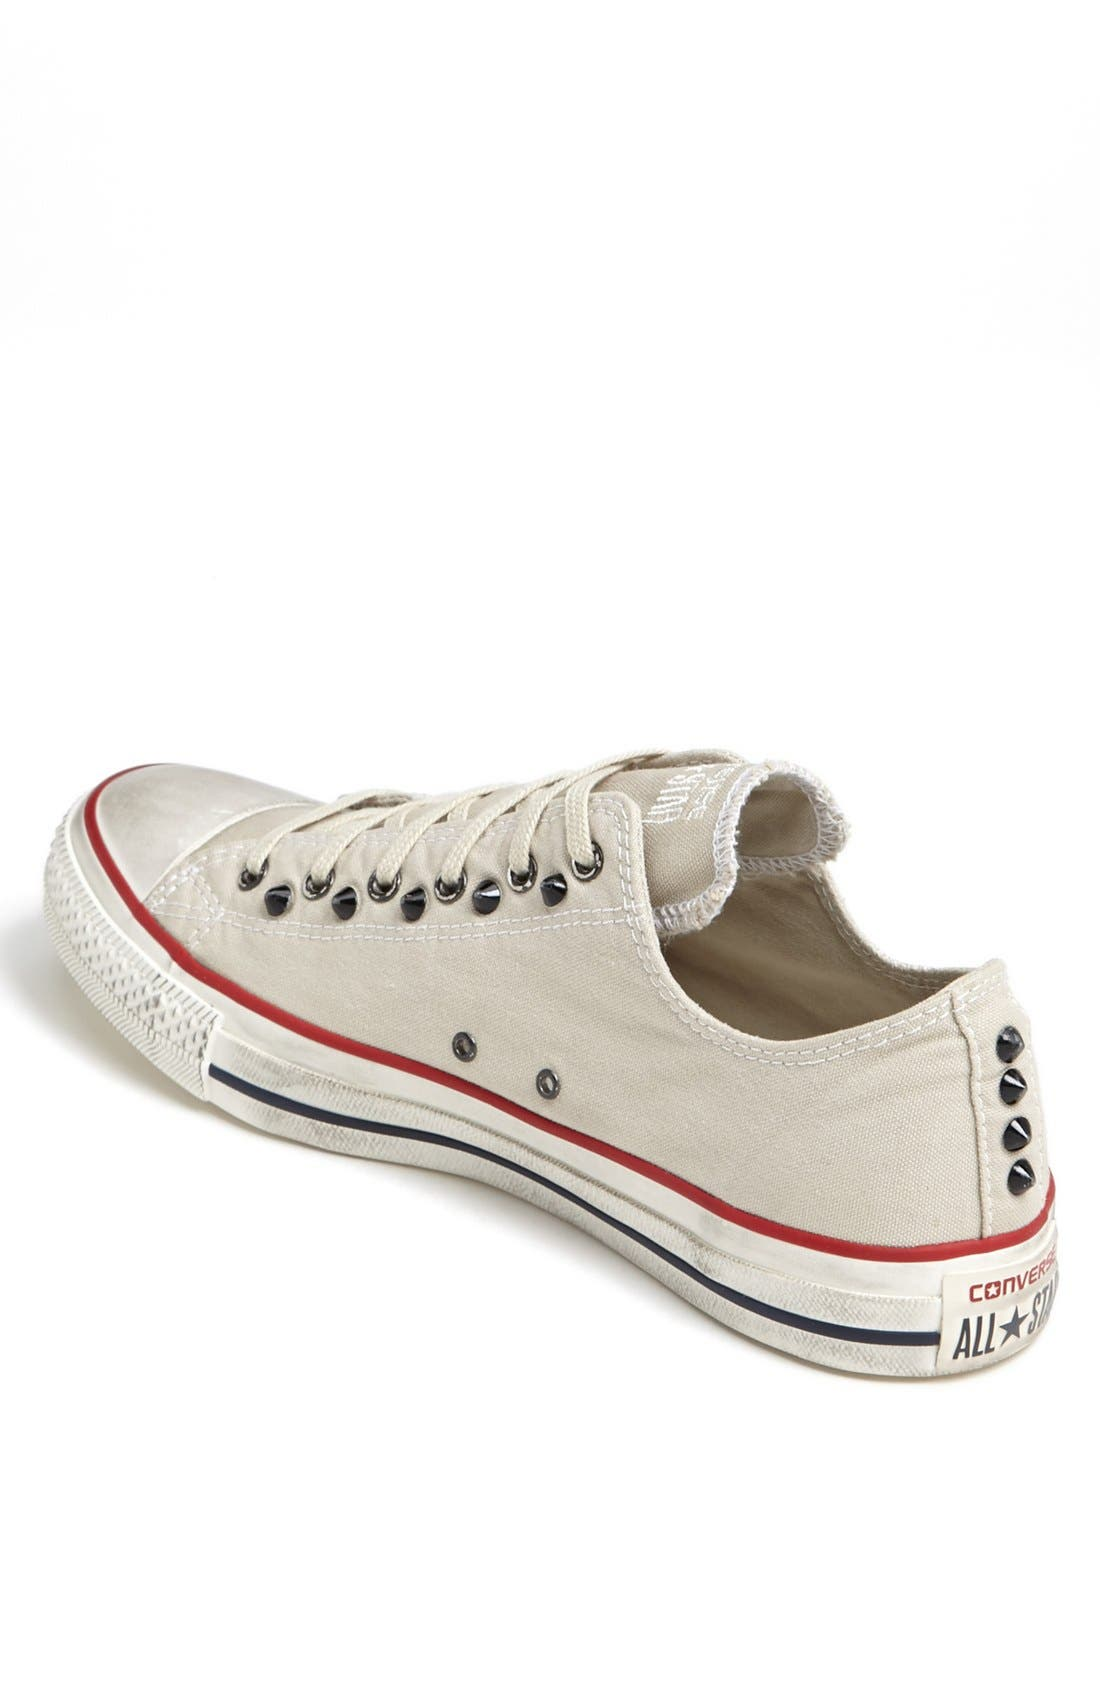 Alternate Image 2  - Converse Chuck Taylor® All Star® Low Sneaker (Men)